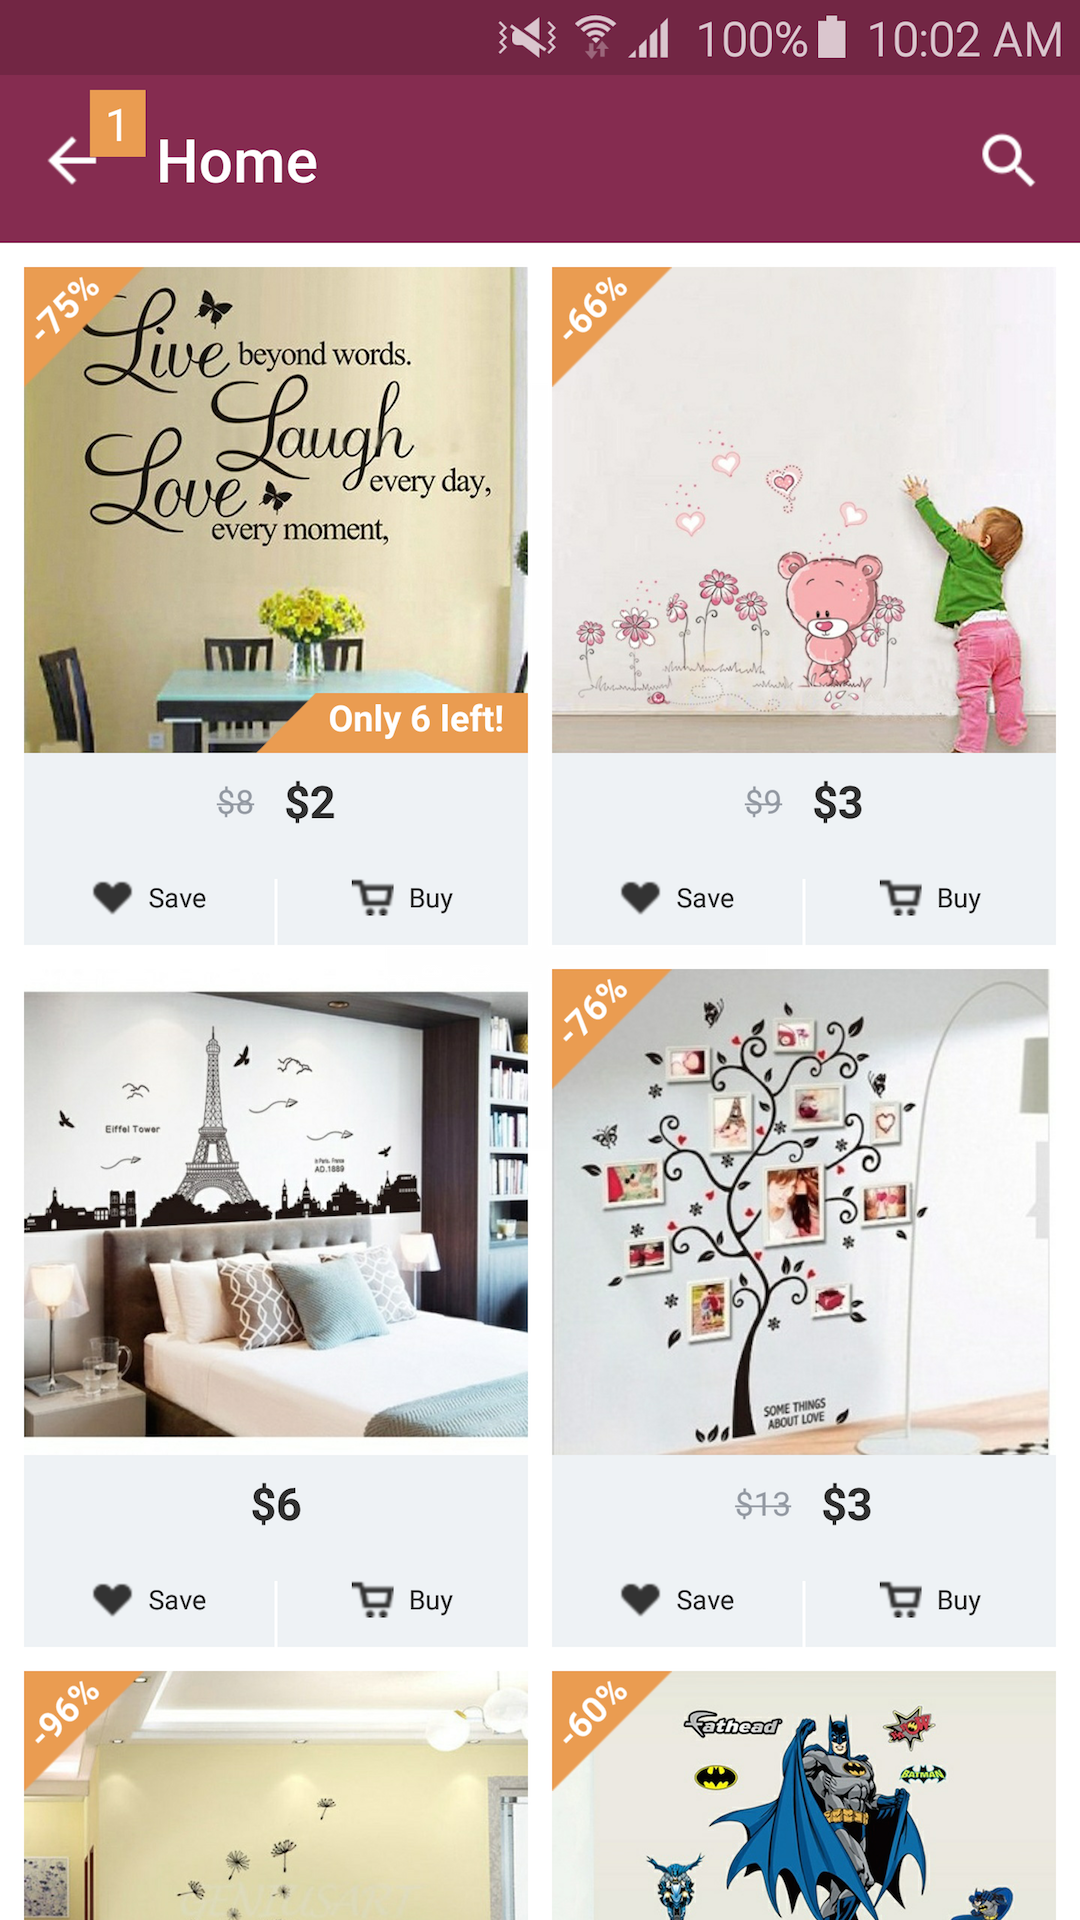 Home Design Decor Shopping Amazoncouk Appstore for Android